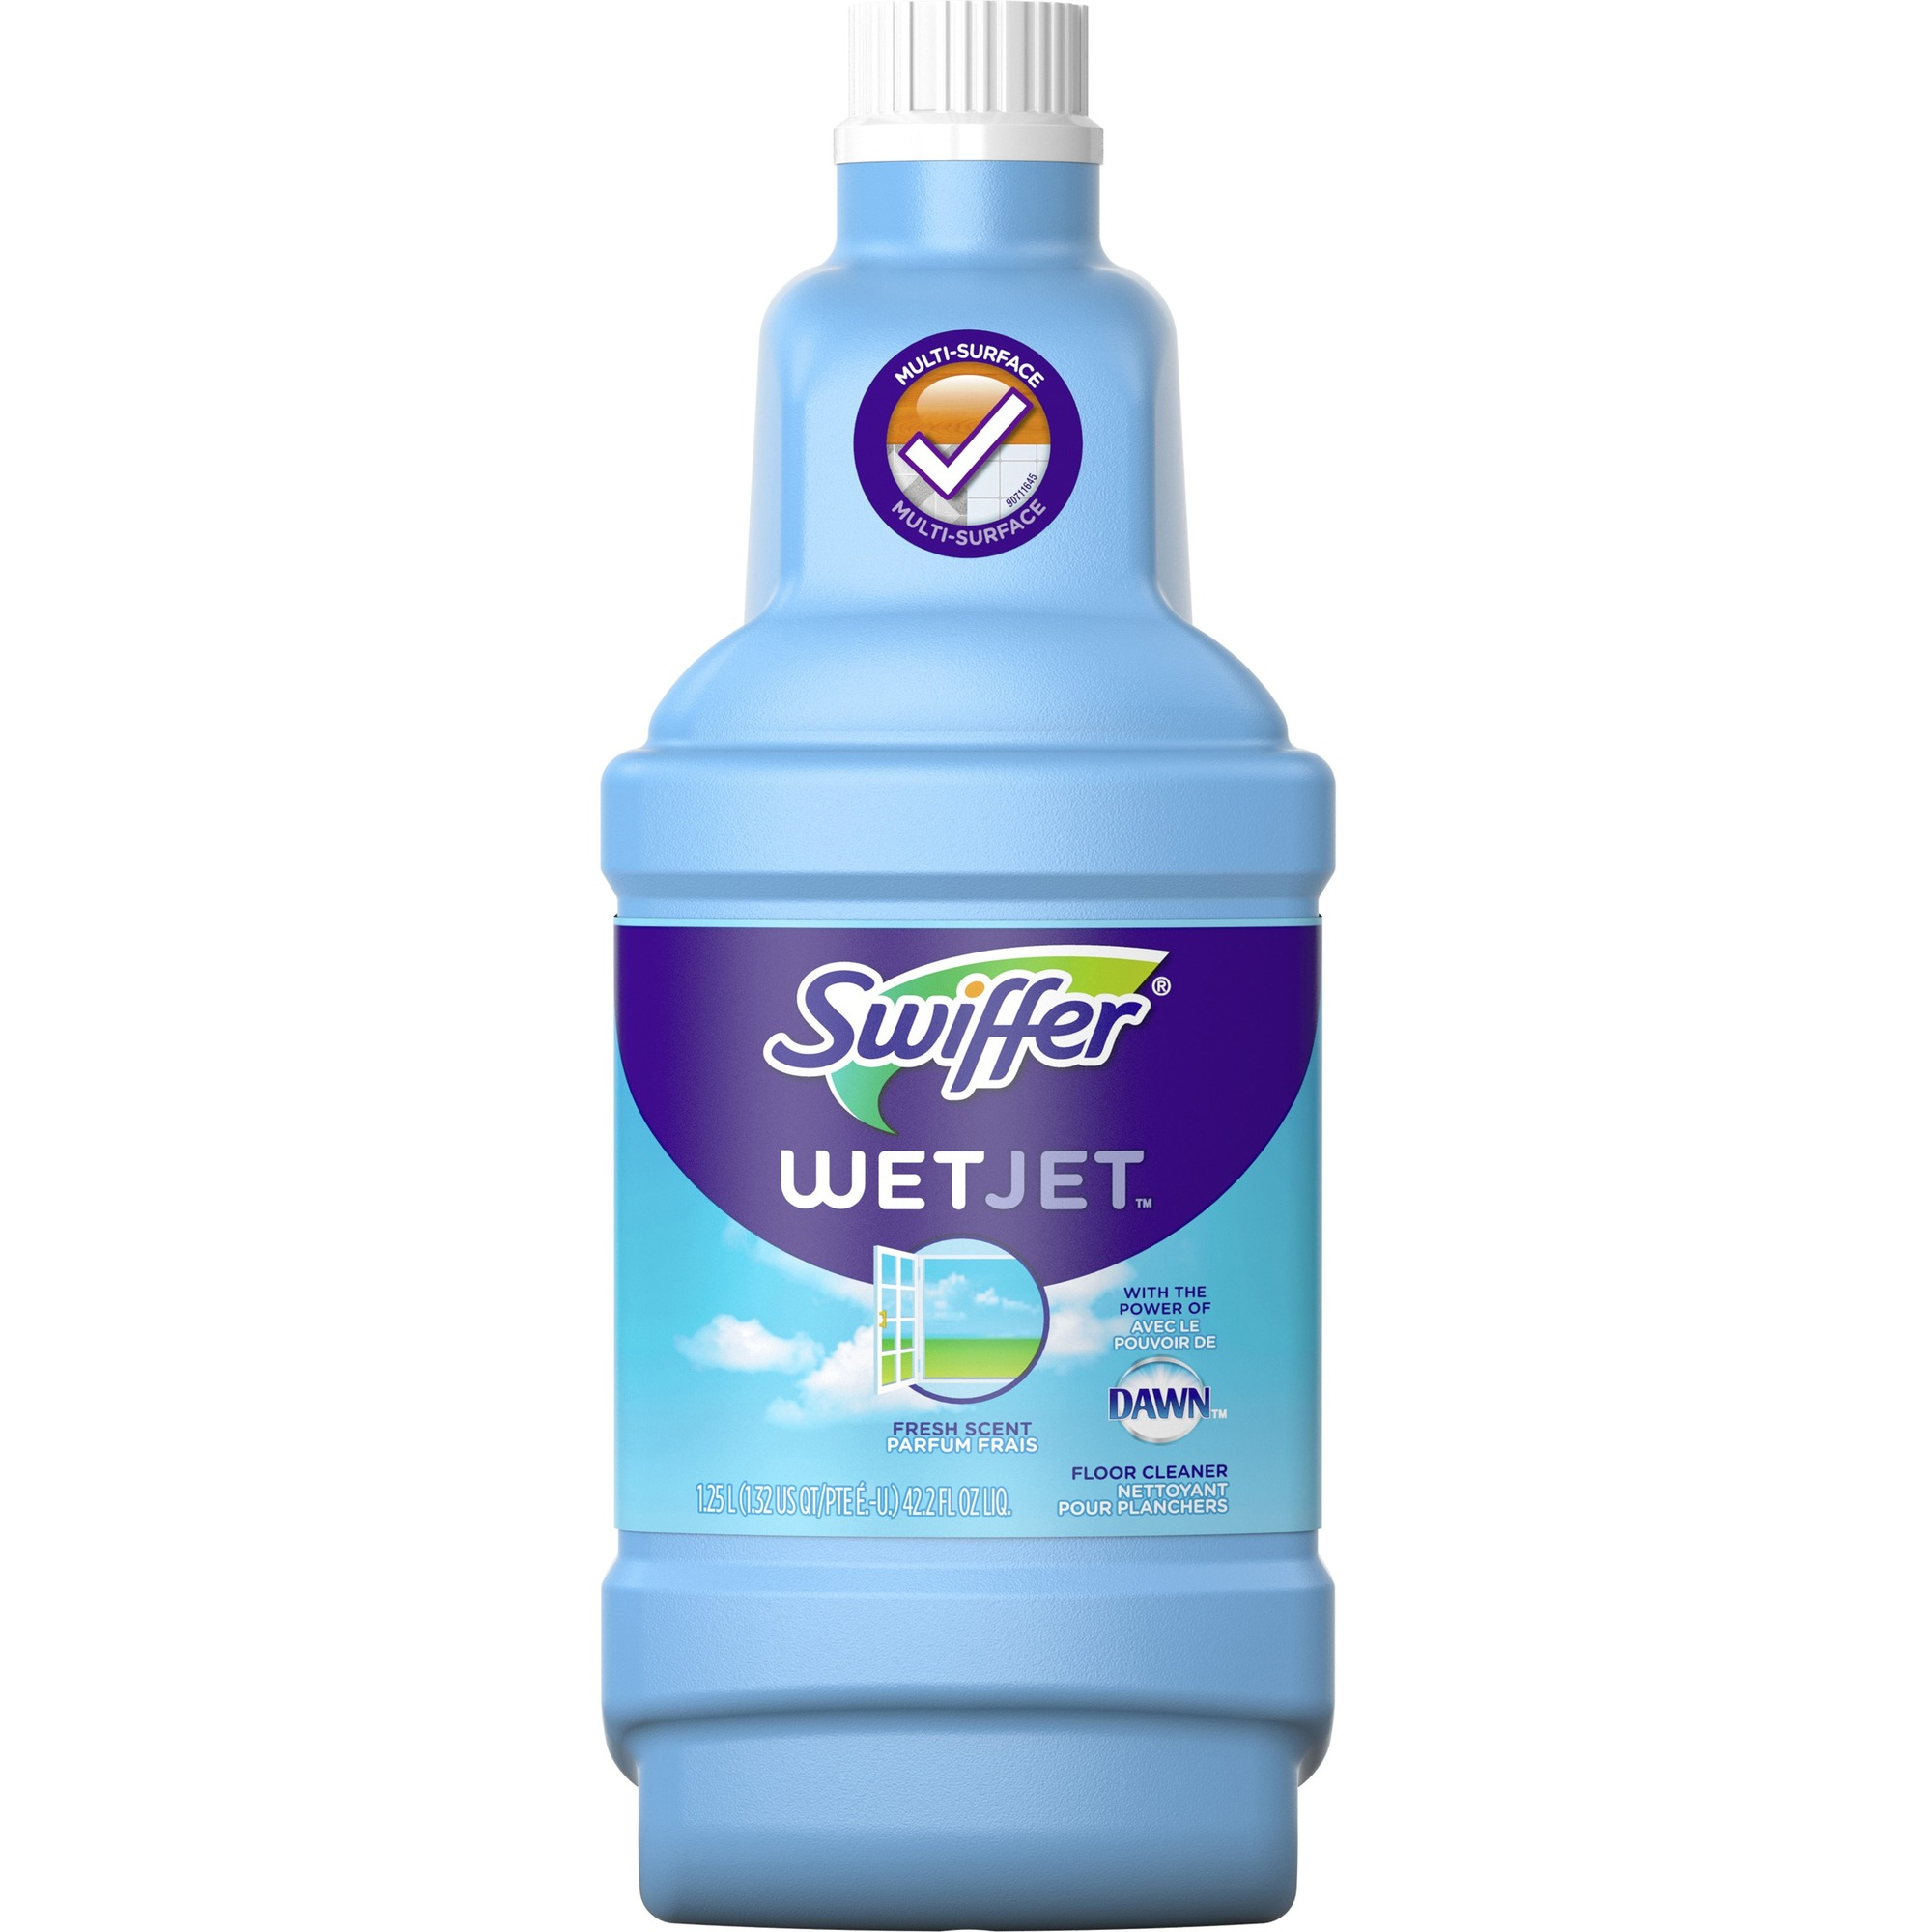 Product Pgc77810 Swiffer Wetjet Floor Cleaner Sos Speedy